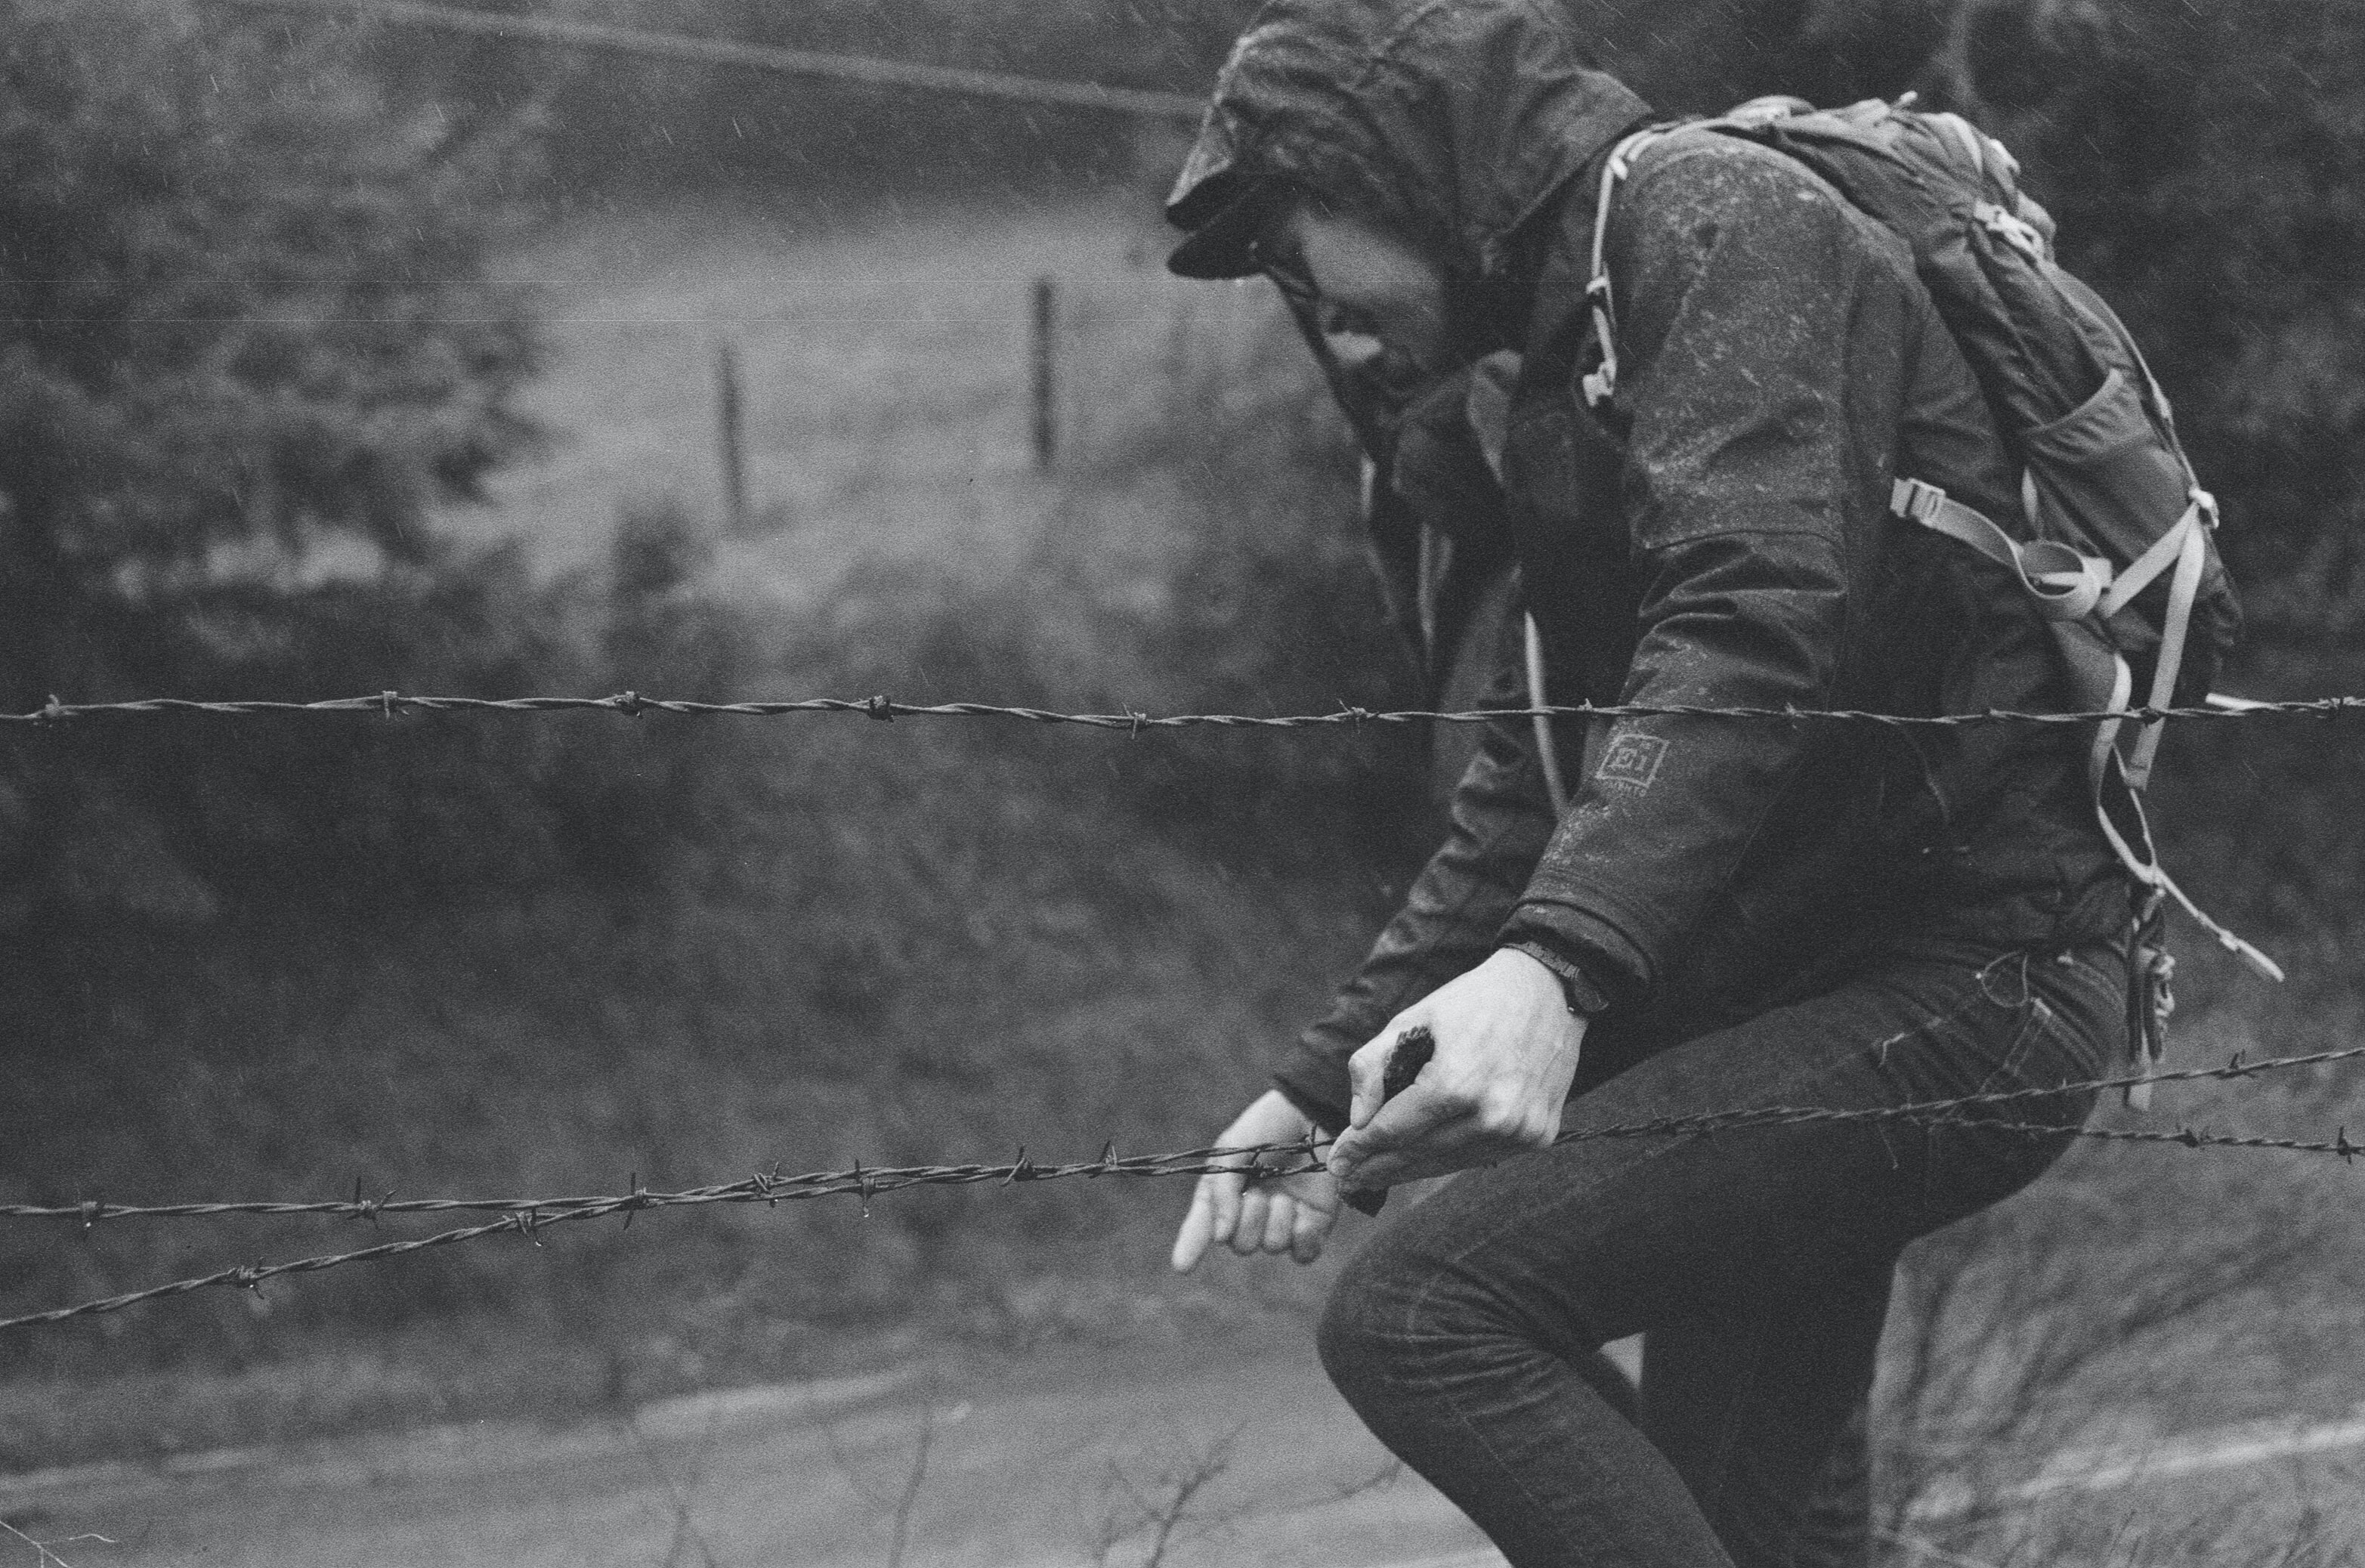 Black and white shot of person with backpack and outdoor clothing climbing through barbed wire fence